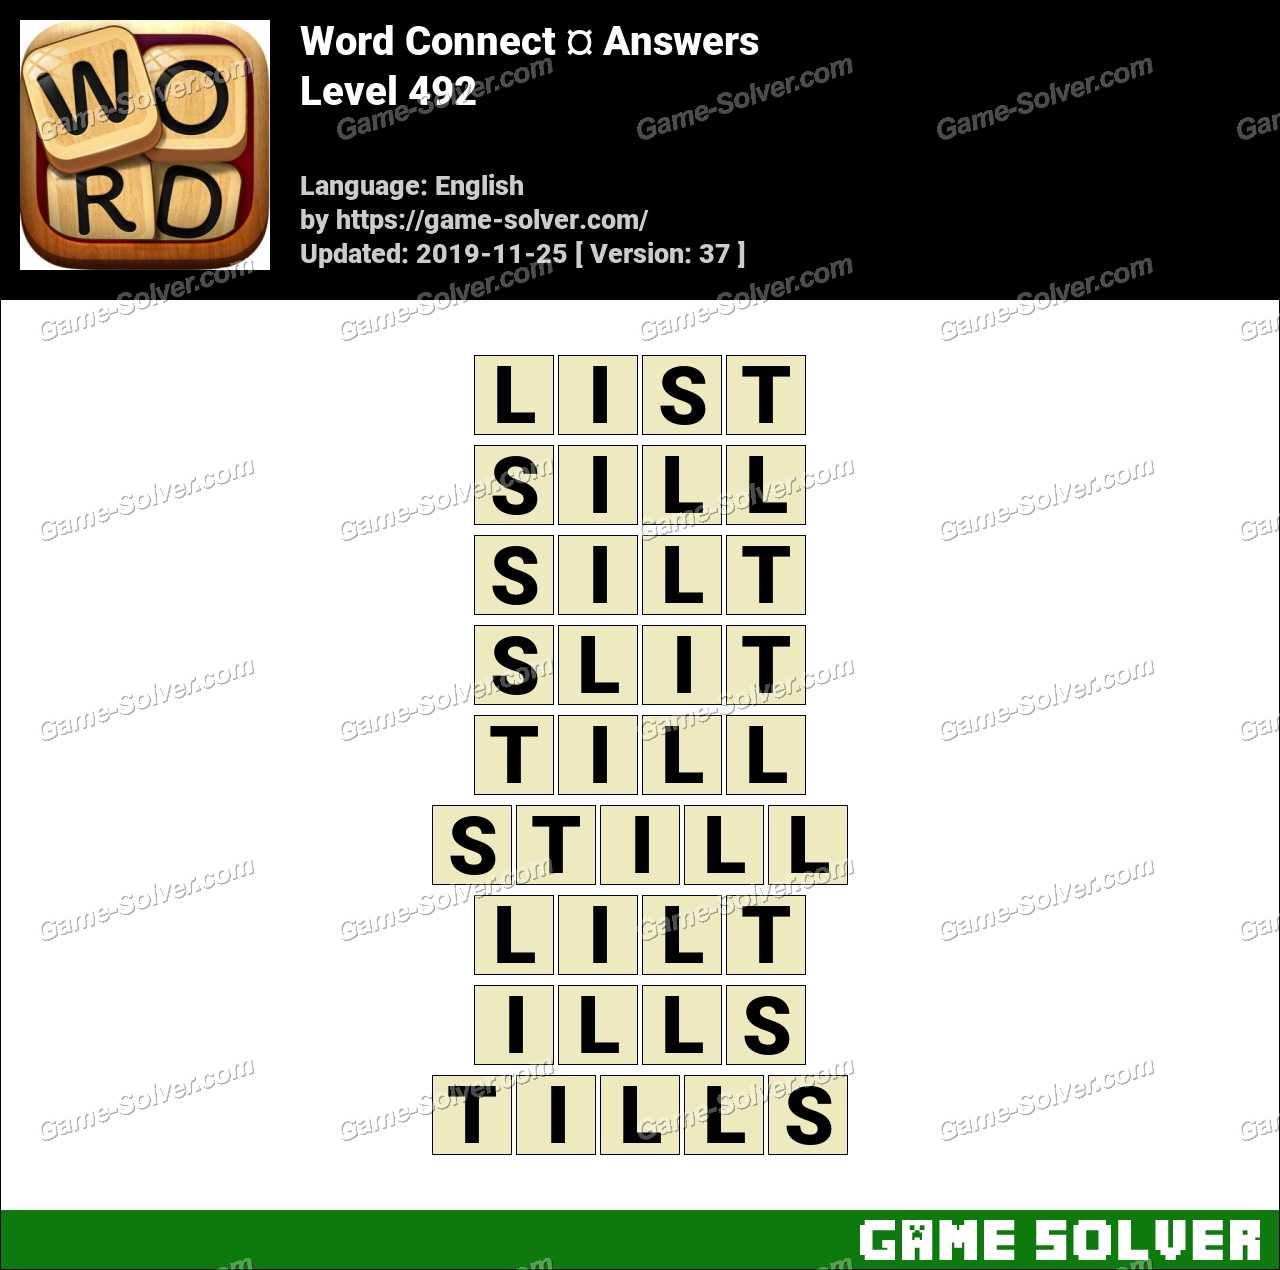 Word Connect Level 492 Answers